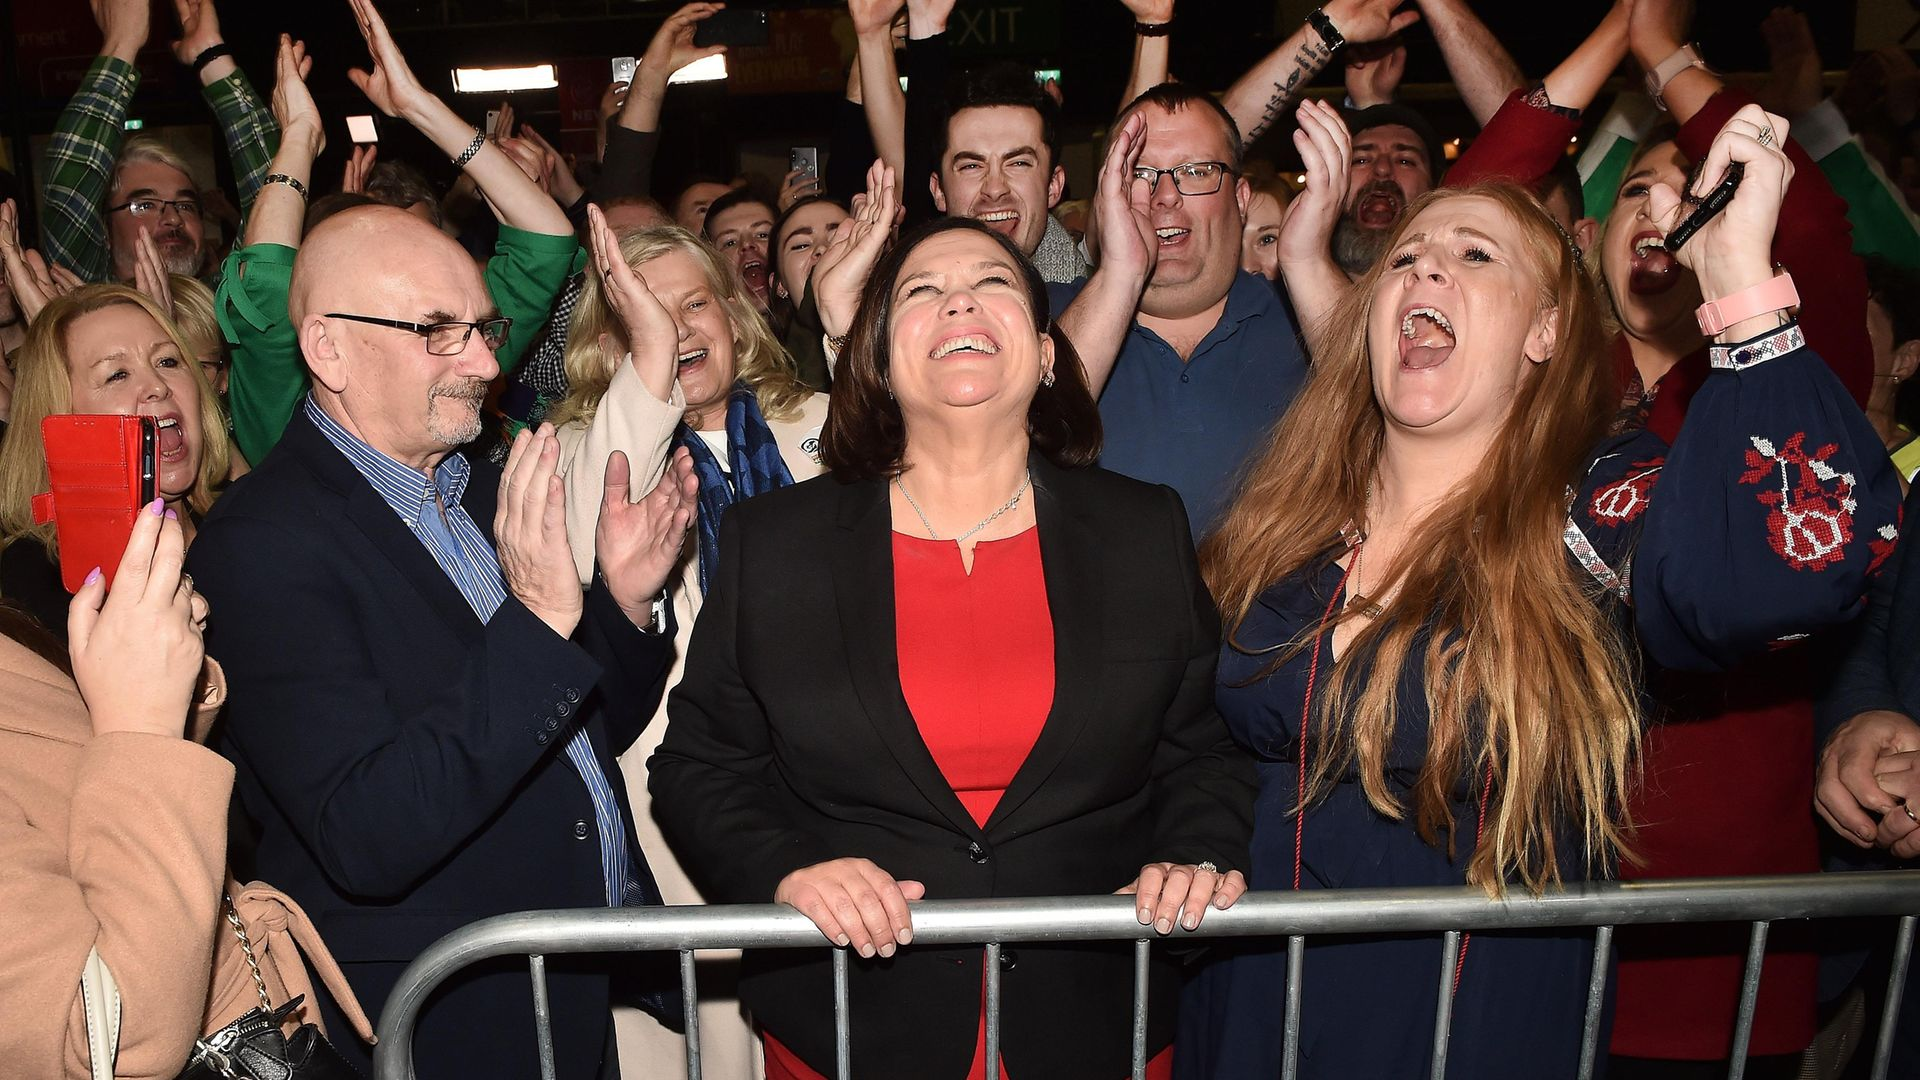 Sinn Fein leader Mary Lou McDonald celebrates with her supporters after being elected in 2020 - Credit: Getty Images